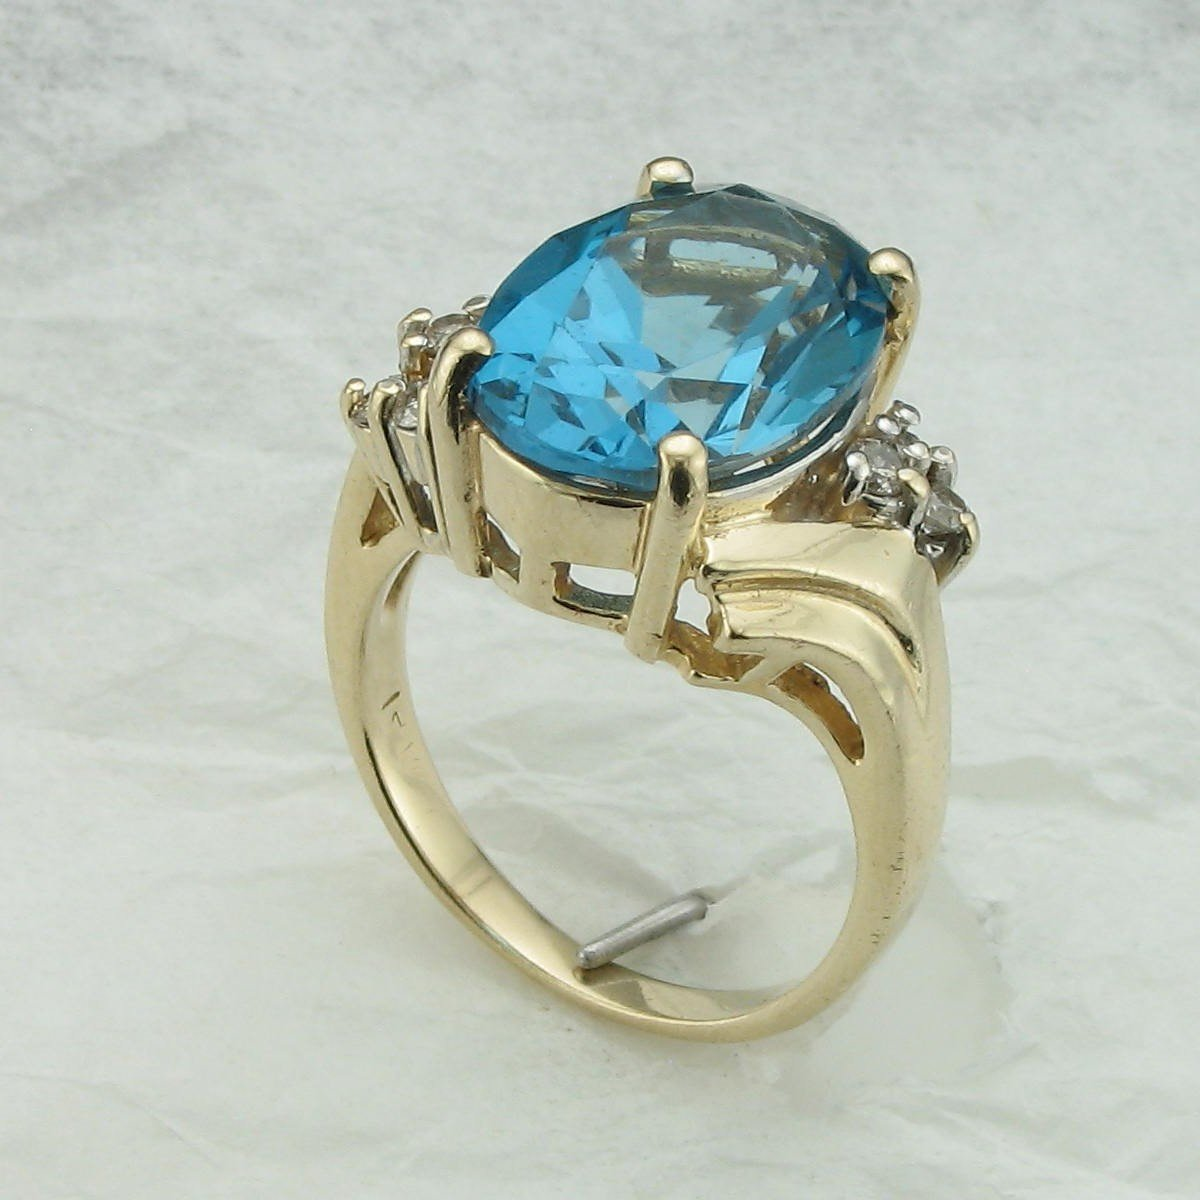 7.50ct London Blue Topaz and Diamond Ring set in 14K Yellow Gold